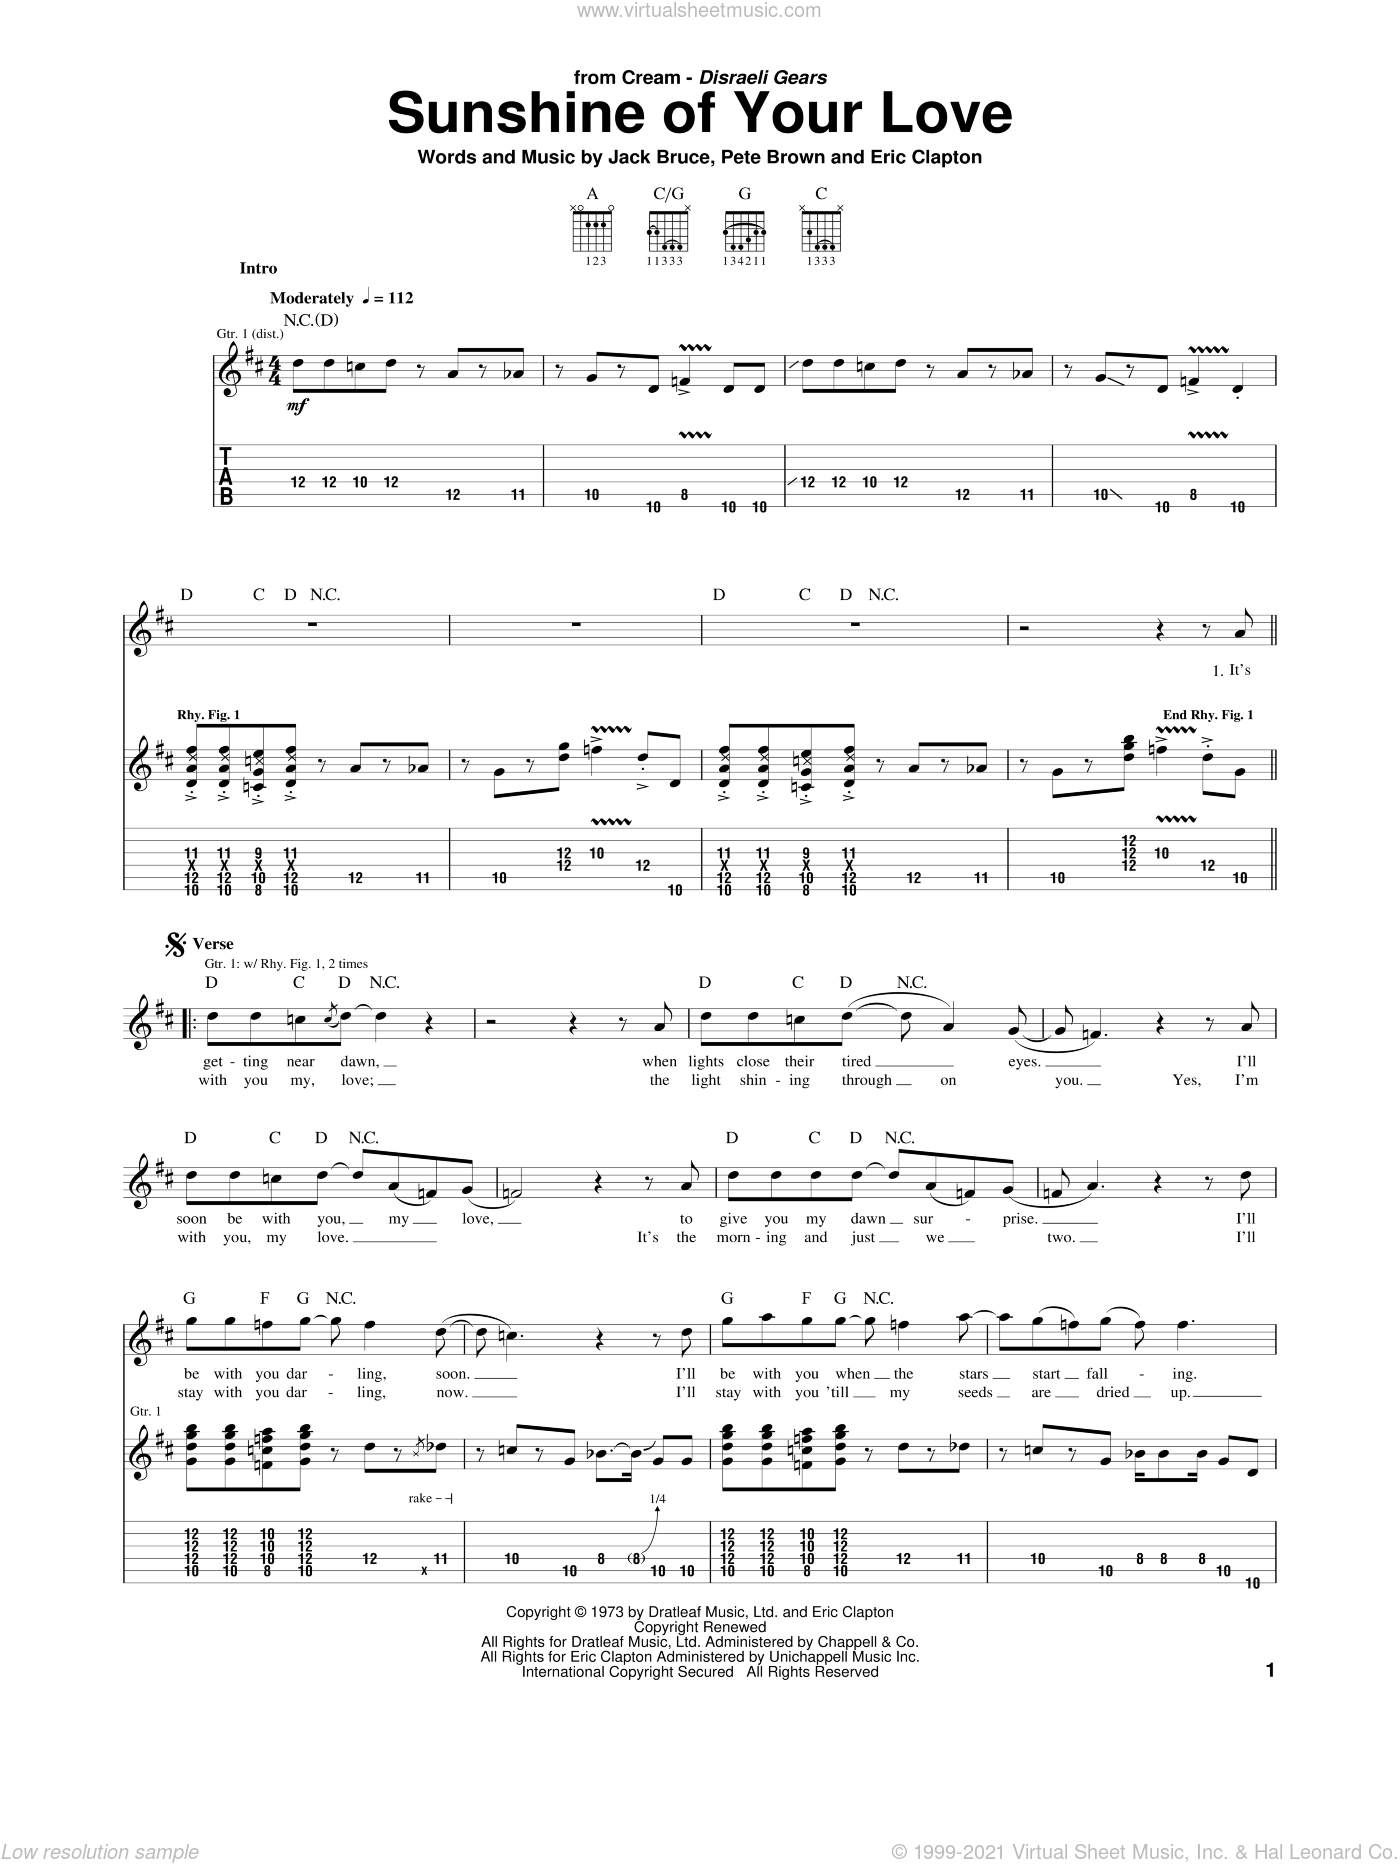 Sunshine Of Your Love sheet music for guitar (tablature) by Cream, Eric Clapton, Jack Bruce and Pete Brown, intermediate. Score Image Preview.